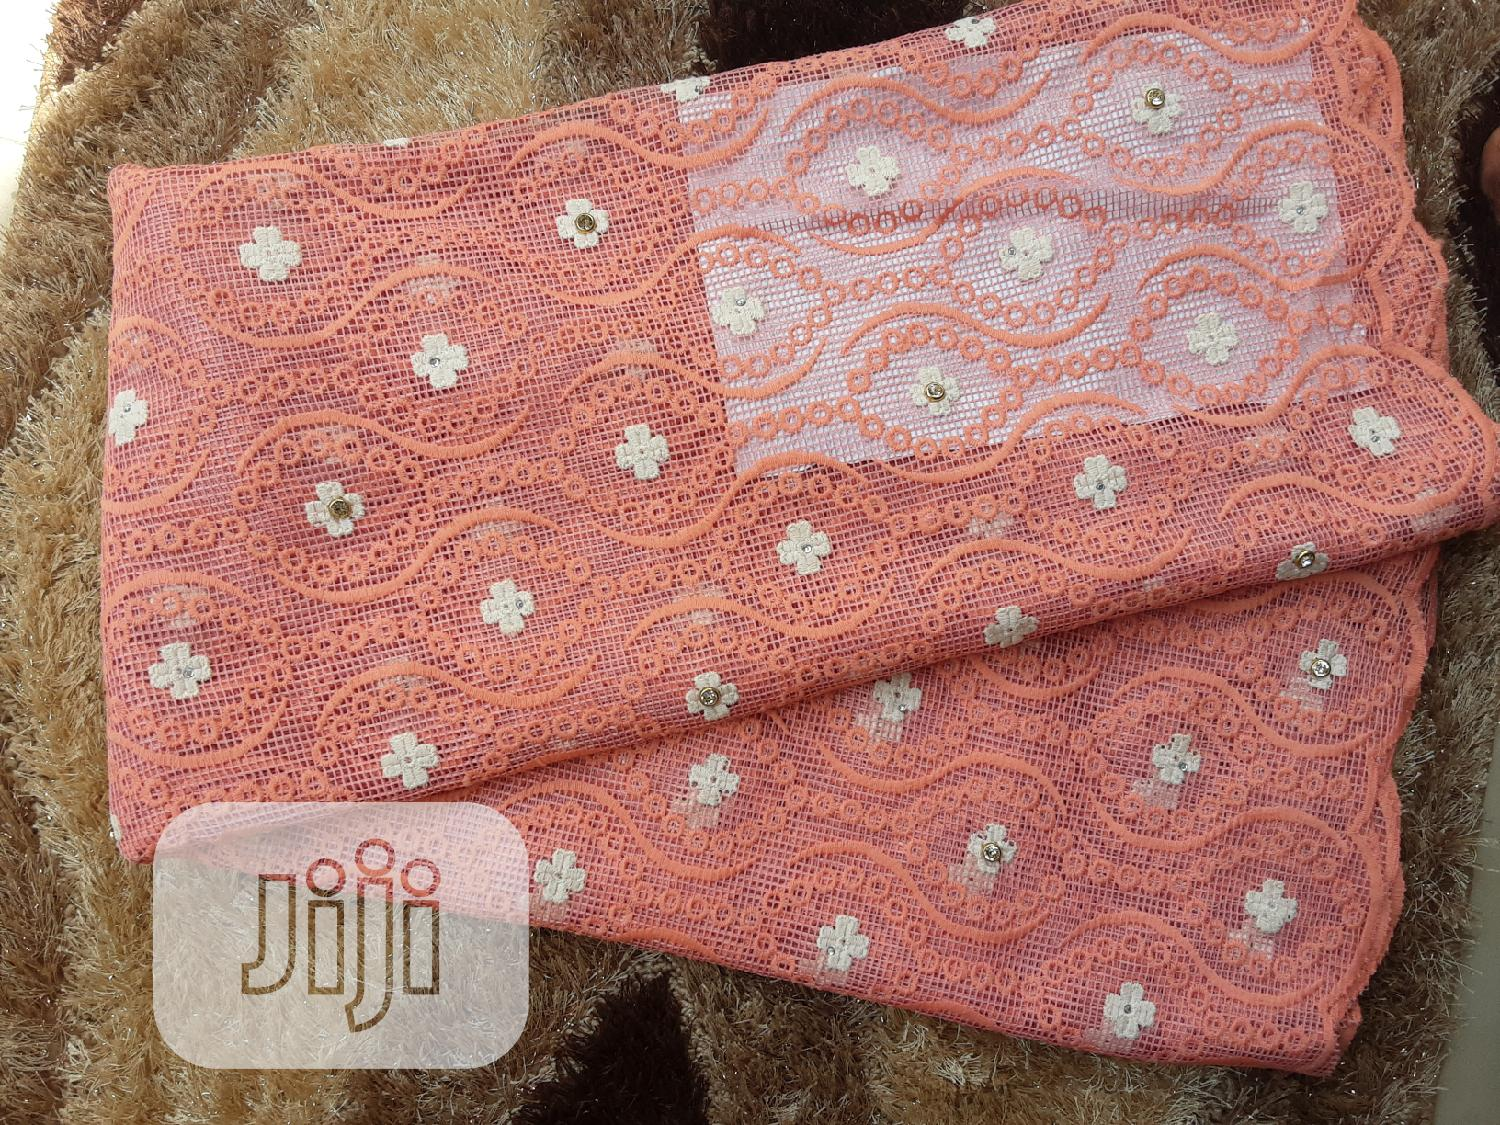 Swiss Net Lace   Clothing for sale in Ikeja, Lagos State, Nigeria